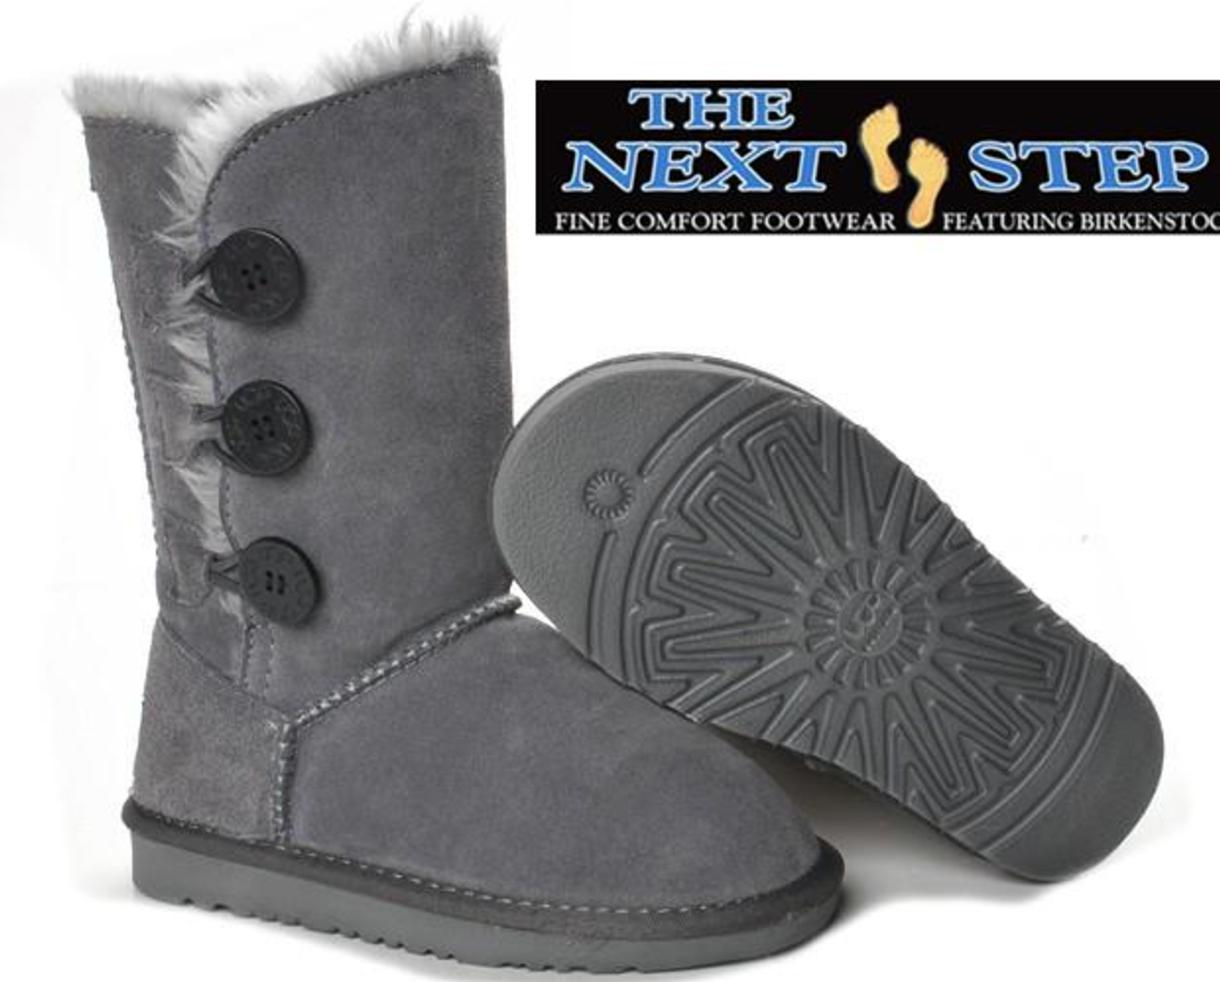 $20 for $40 Worth of Stylish & Comfy Footwear at Next Step Footwear - In-Store (4 Locations!) and Online (50% Off)